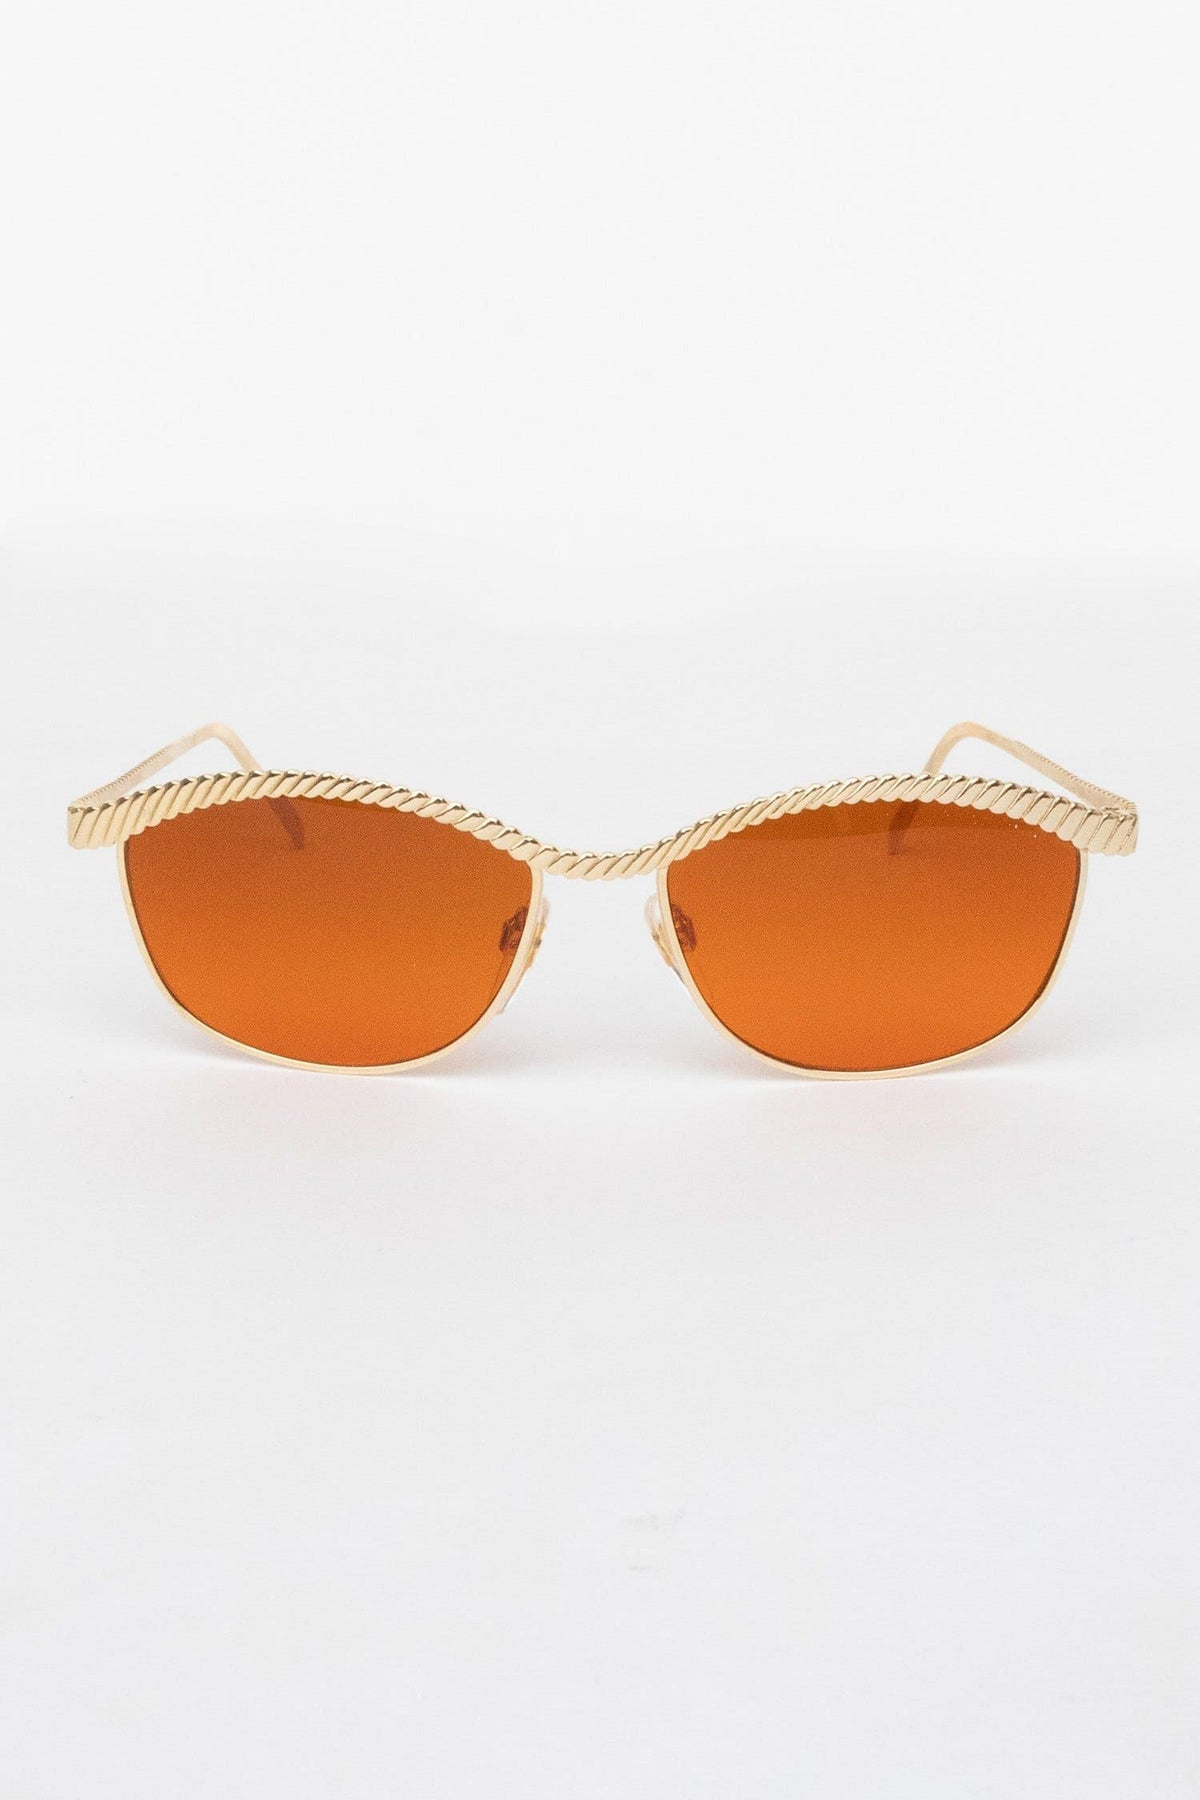 SGTATI - Tatiana Gold Ornate Sunglasses